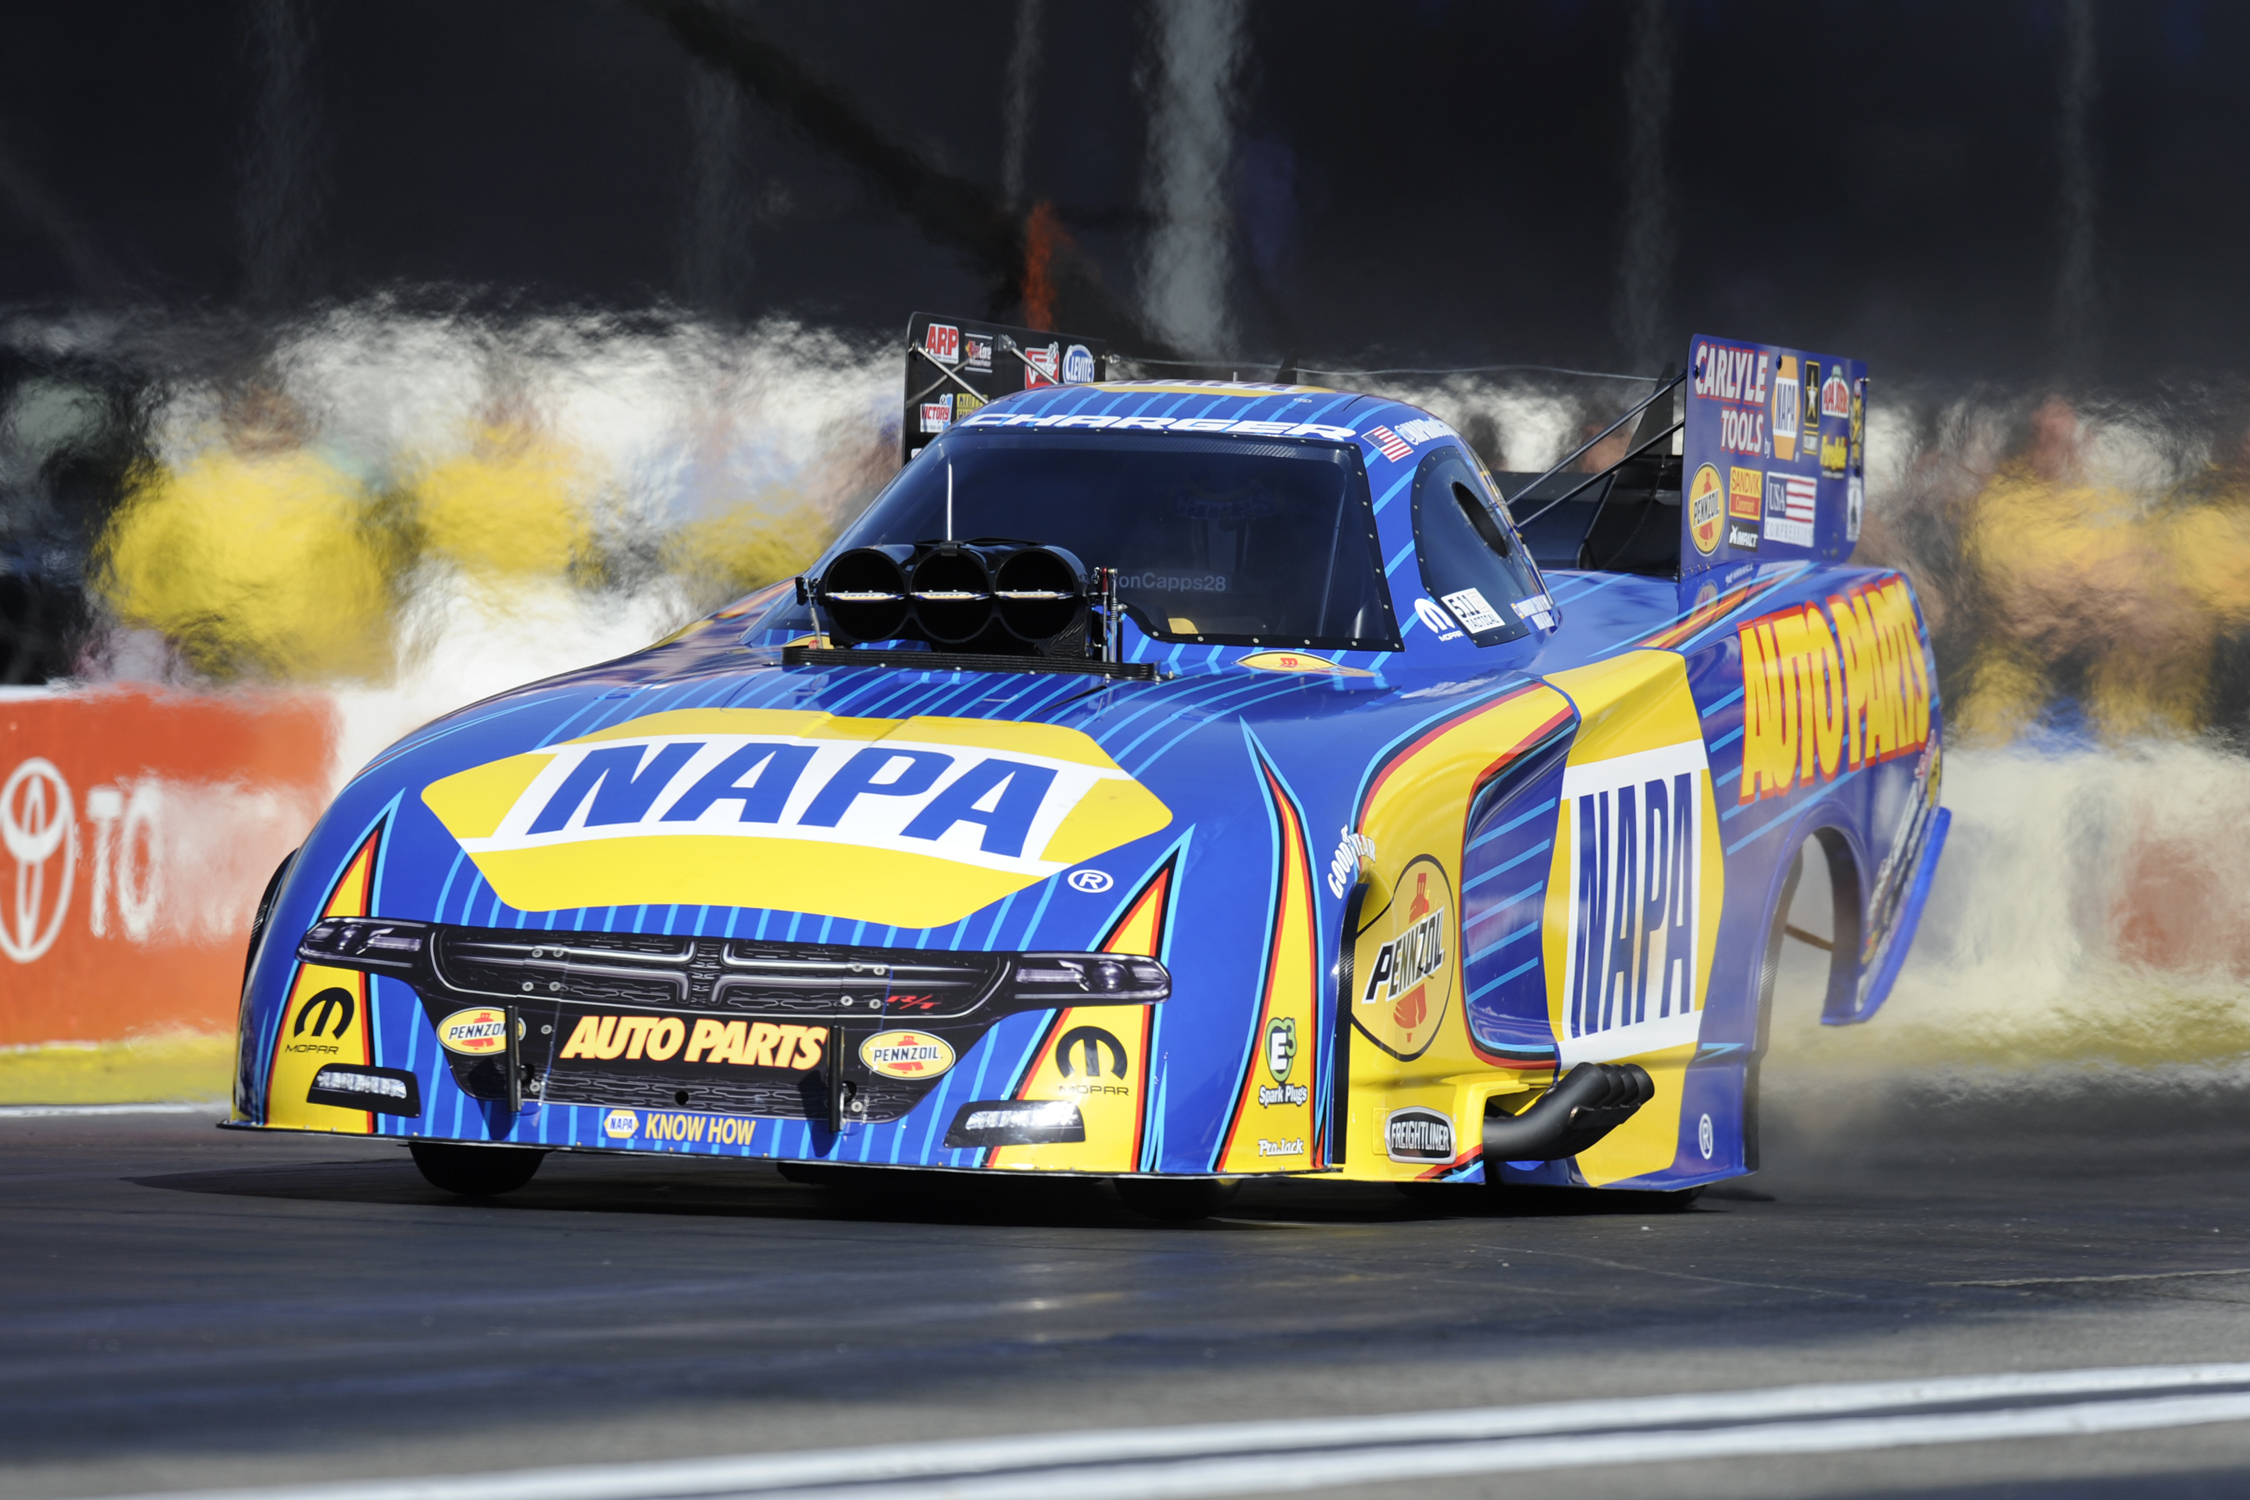 NHRA Funny Car Ron Capps action